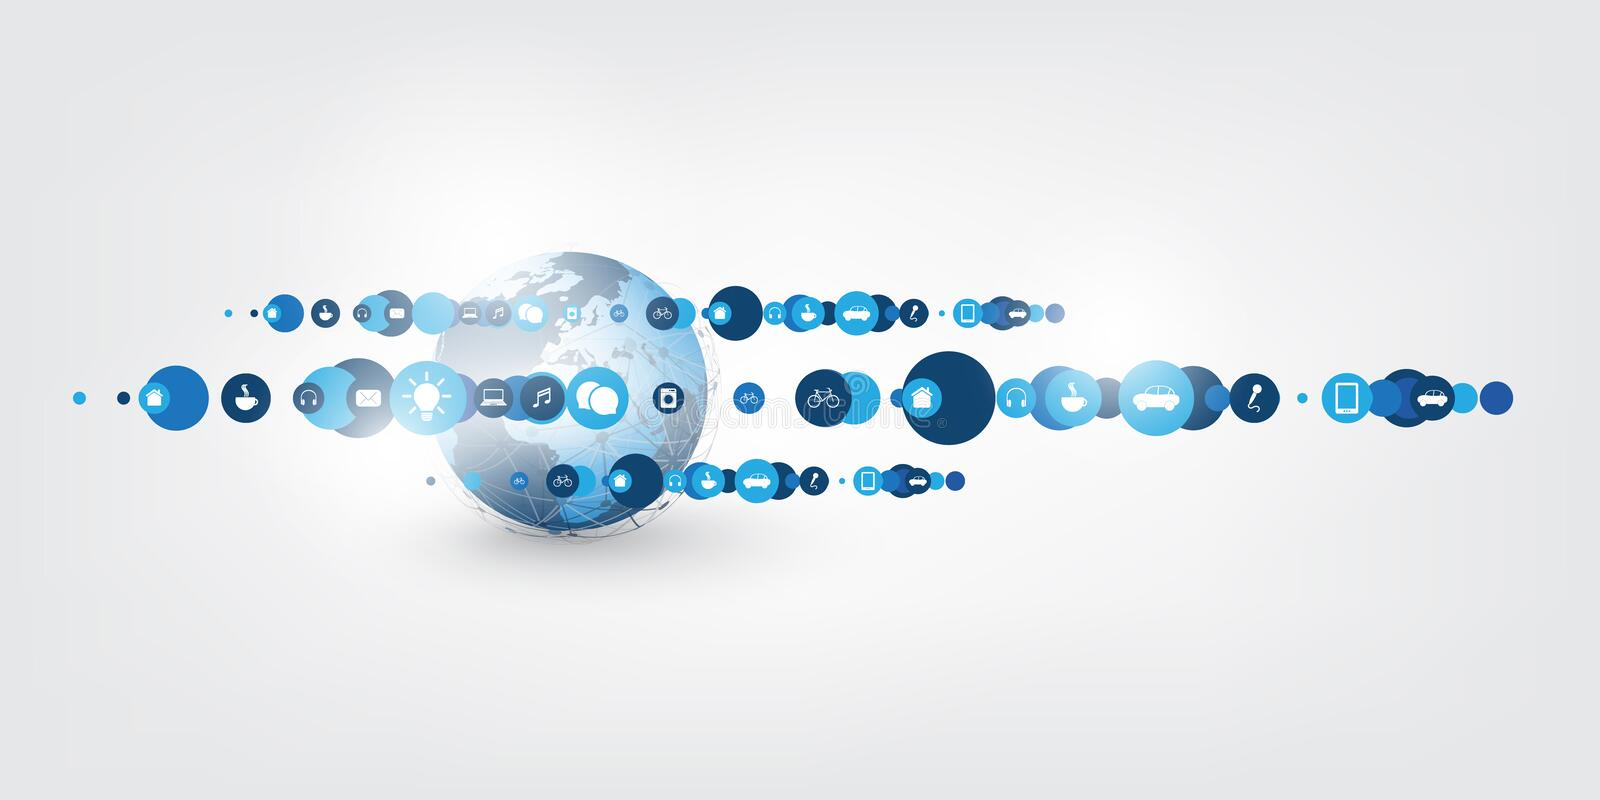 Internet of Things, Cloud Computing Design Concept with Icons - Digital Network Connections, Technology Background stock illustration